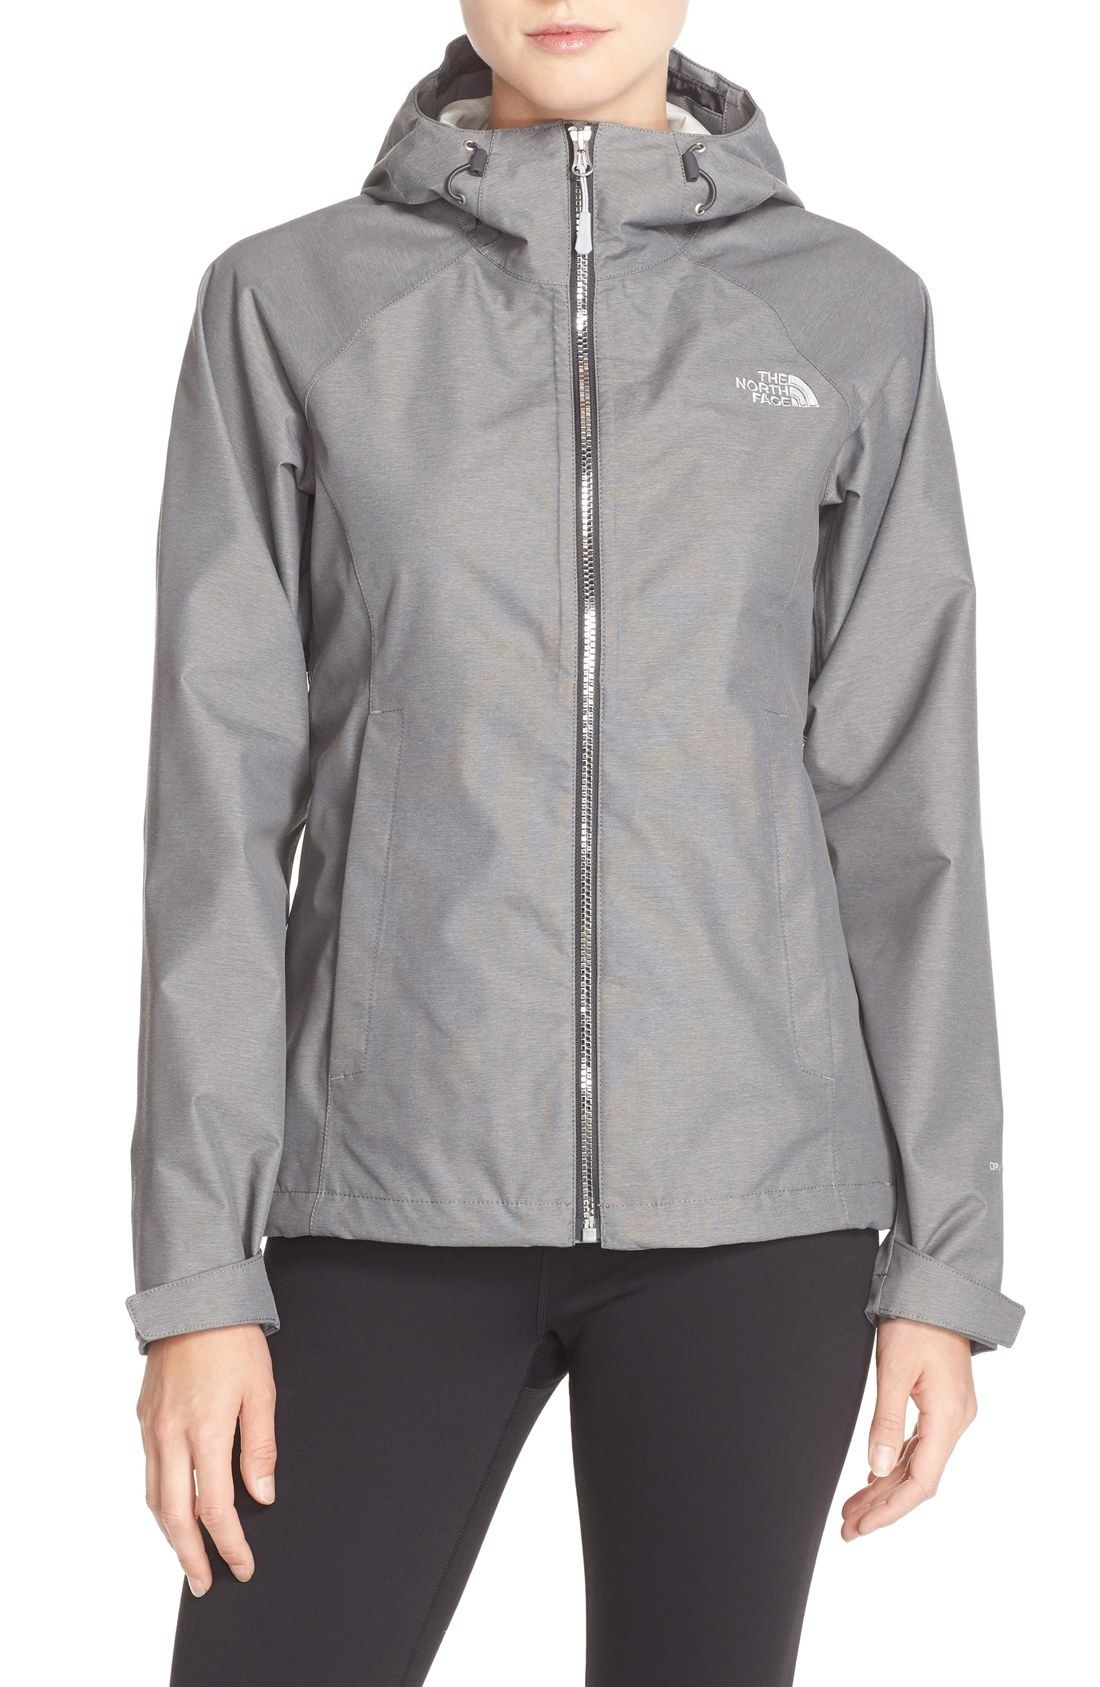 6437ffe8948a The North Face  Magnolia  Waterproof Rain Jacket (Nordstrom Exclusive)  available at  Nordstrom. In black